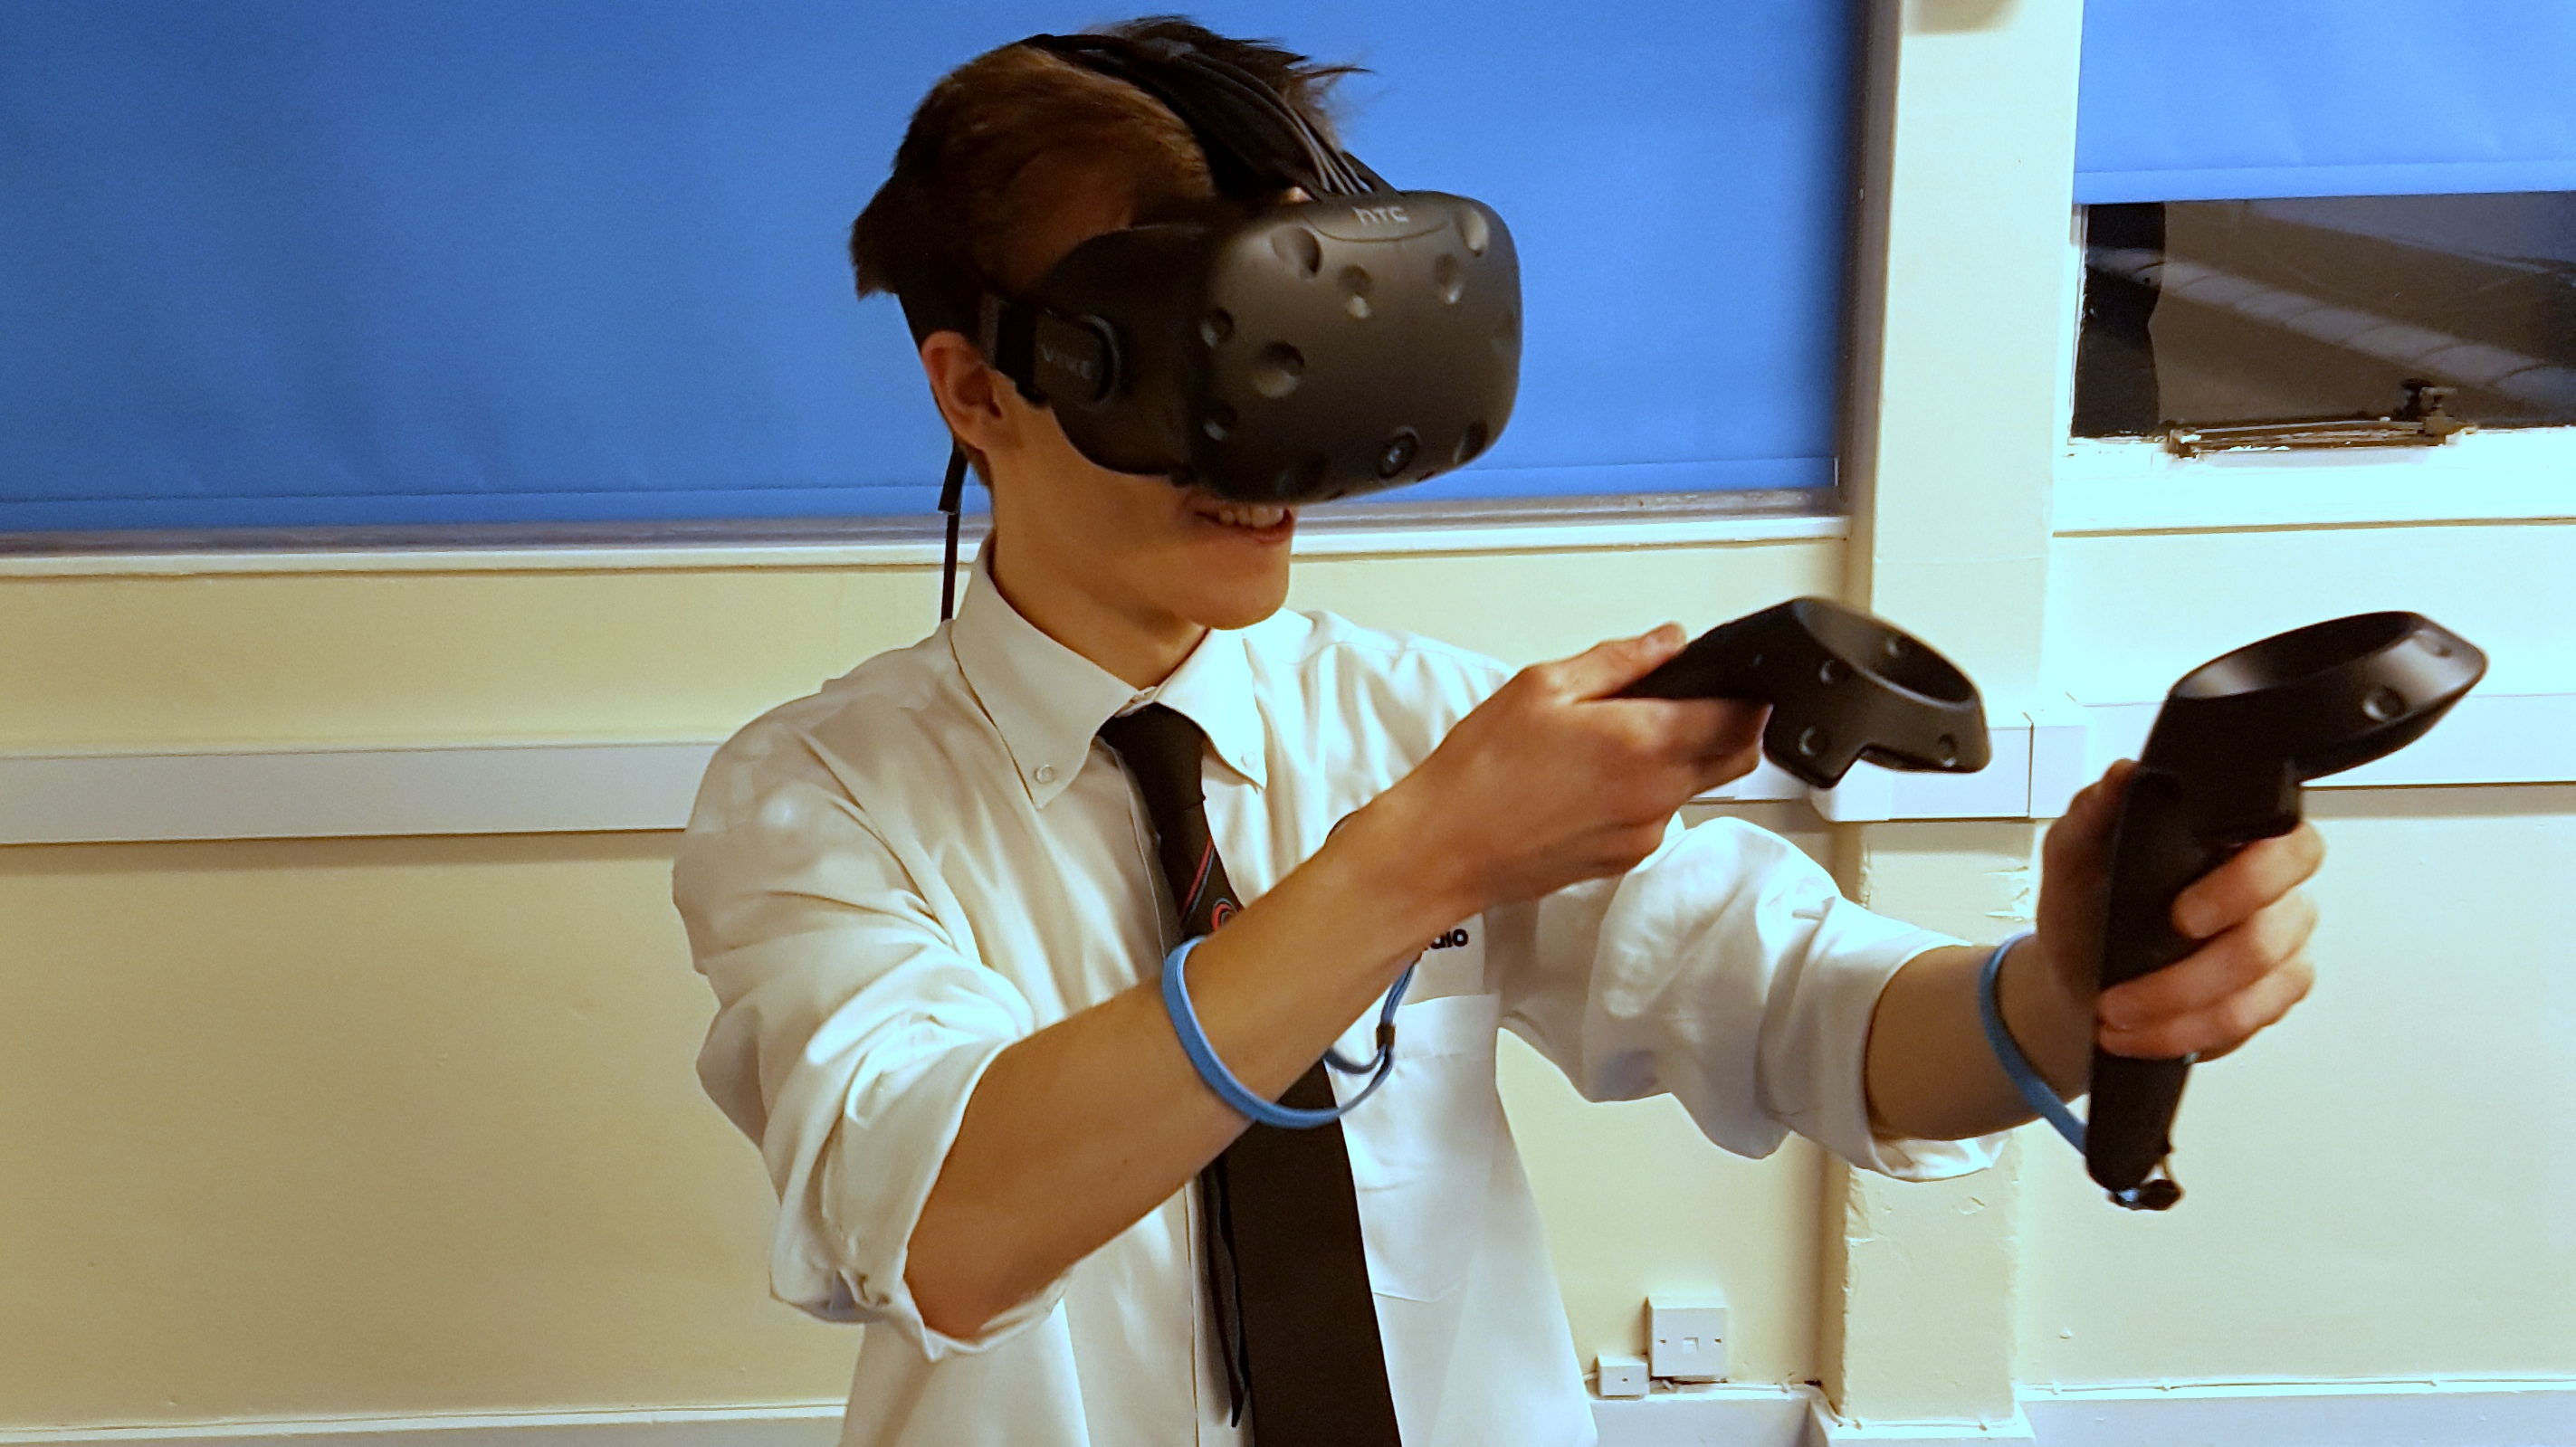 The now of VR